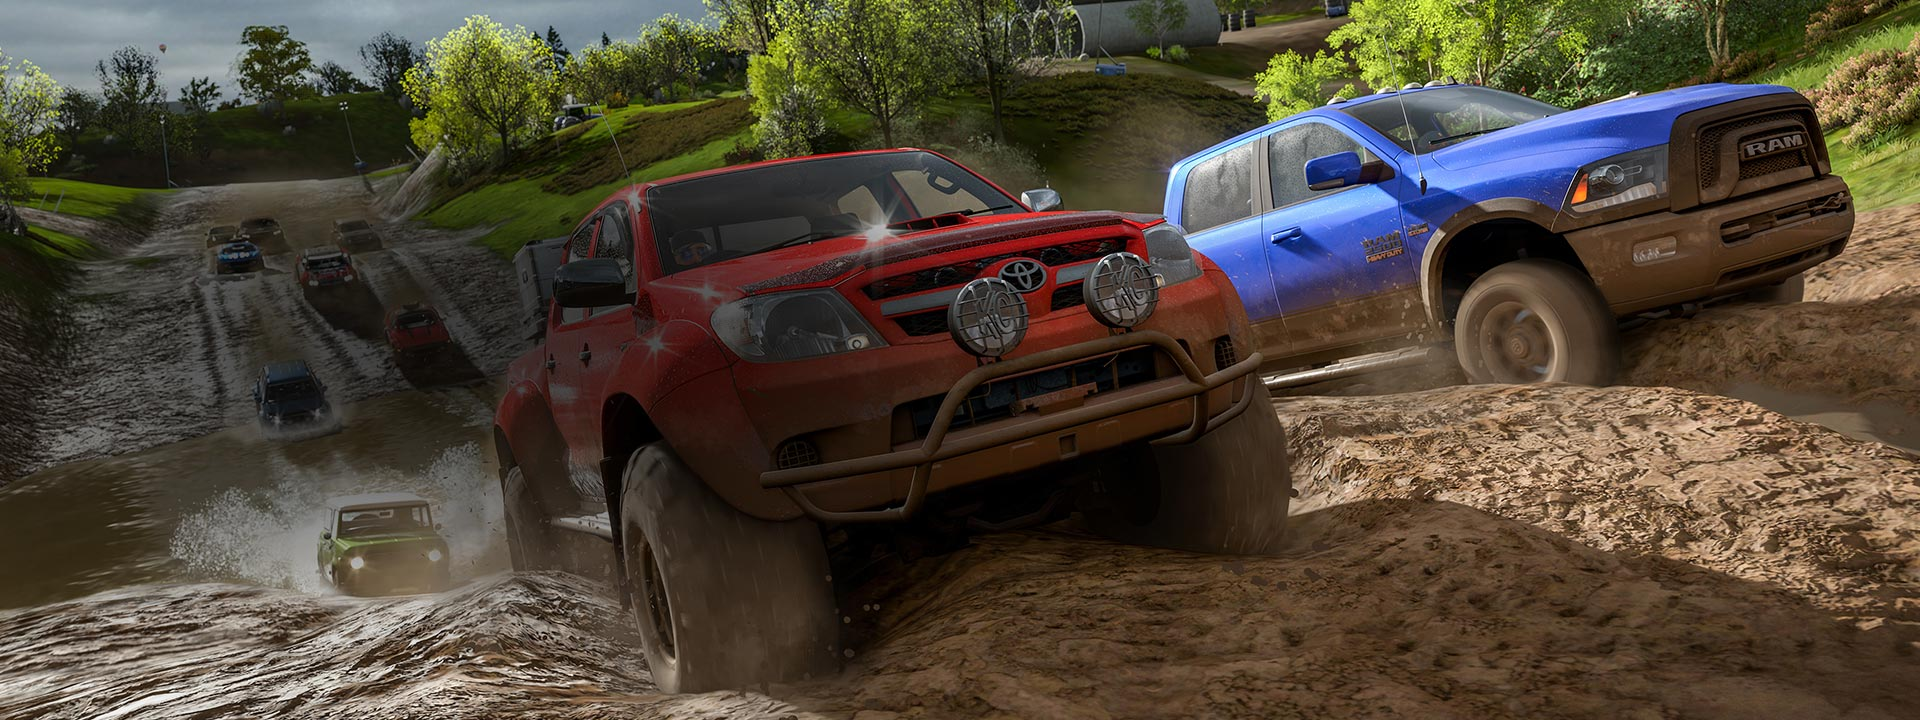 Captura de tela do Forza Horizon 4